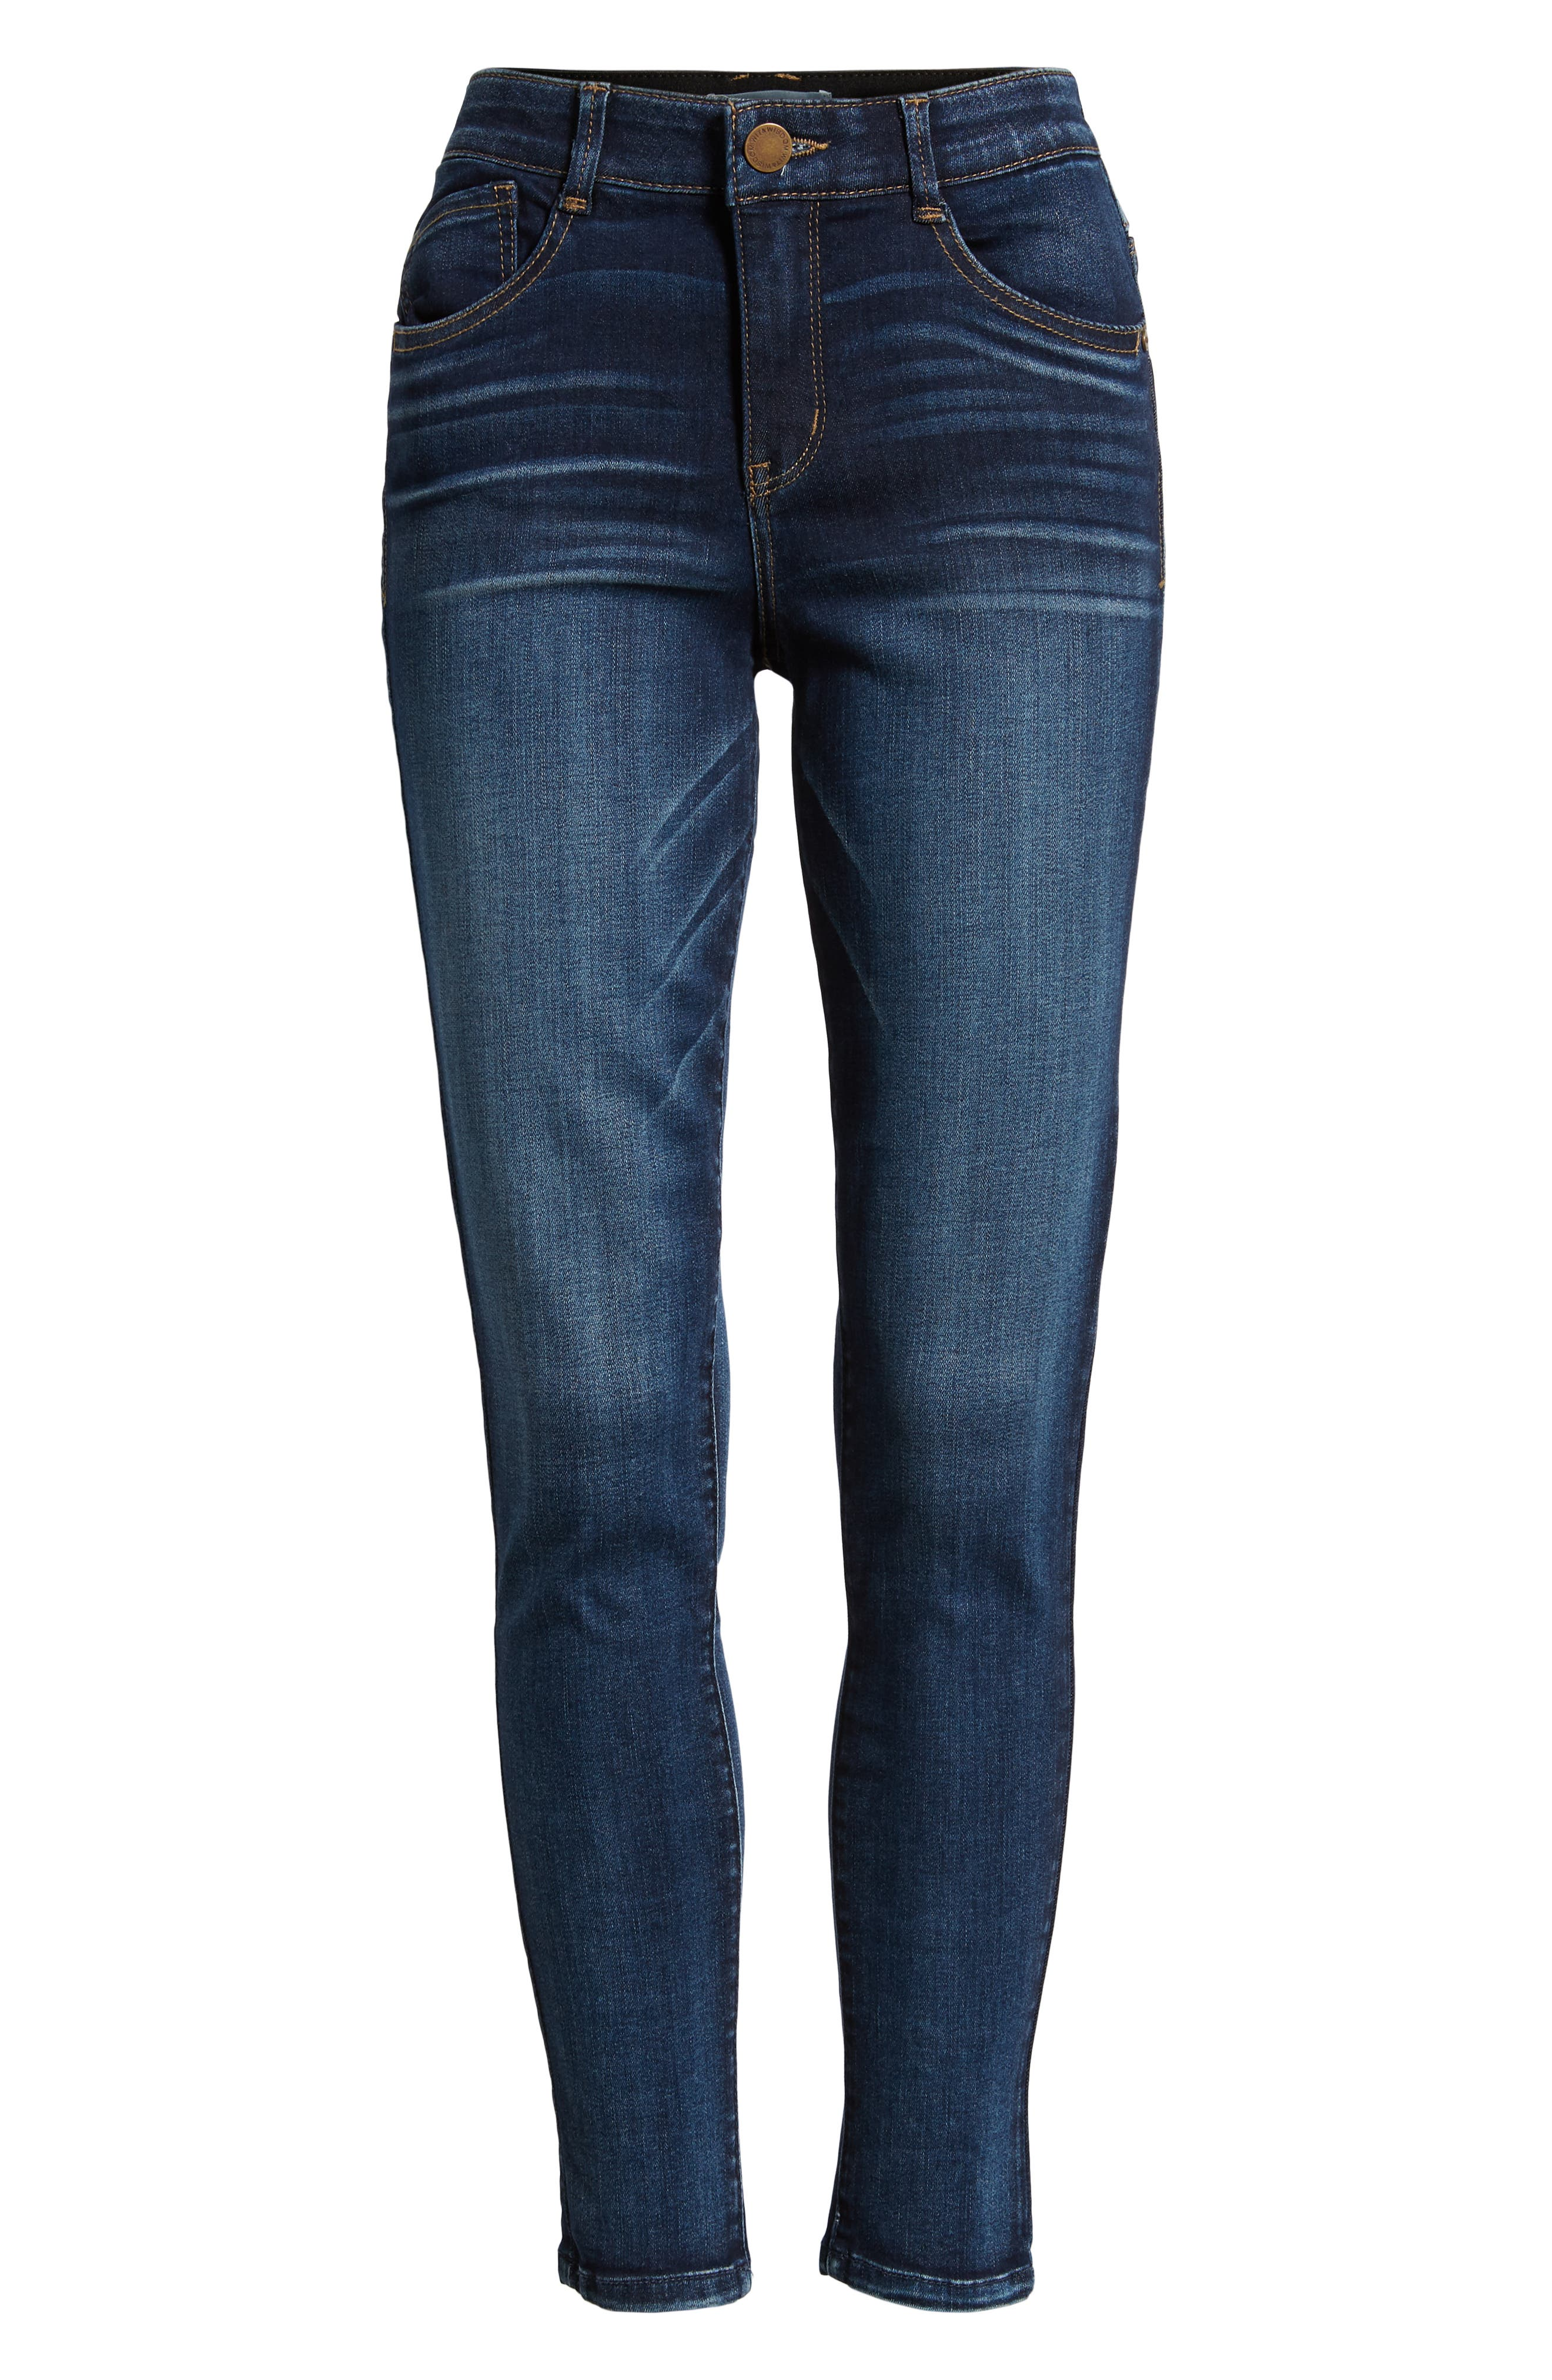 Luxe Touch High Waist Skinny Ankle Jeans,                             Alternate thumbnail 7, color,                             BLUE